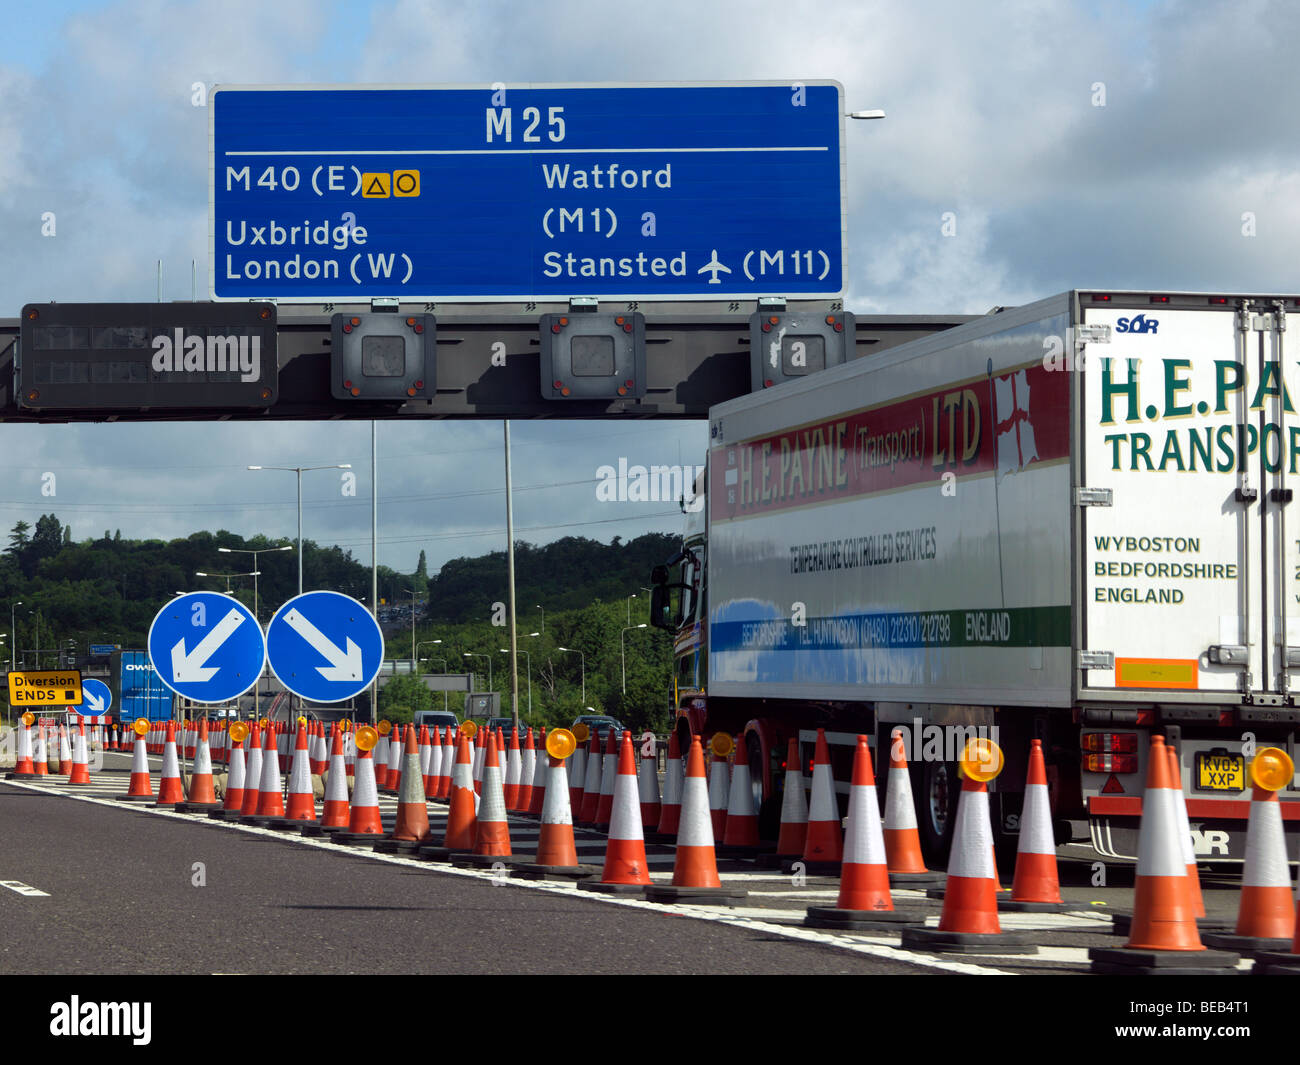 M25 Motorway junction and traffic cones - Stock Image